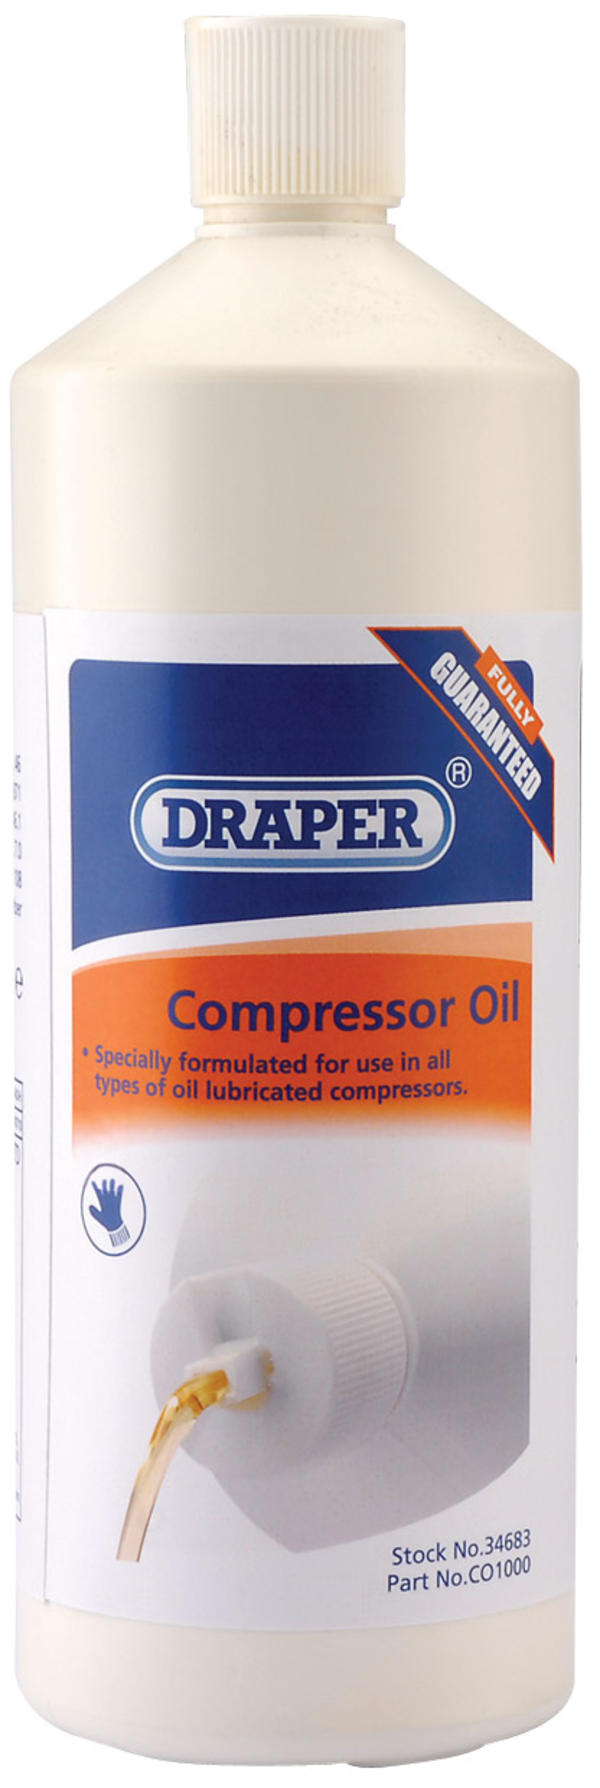 Draper 34683 CO1000 1L Compressor Oil Thumbnail 1